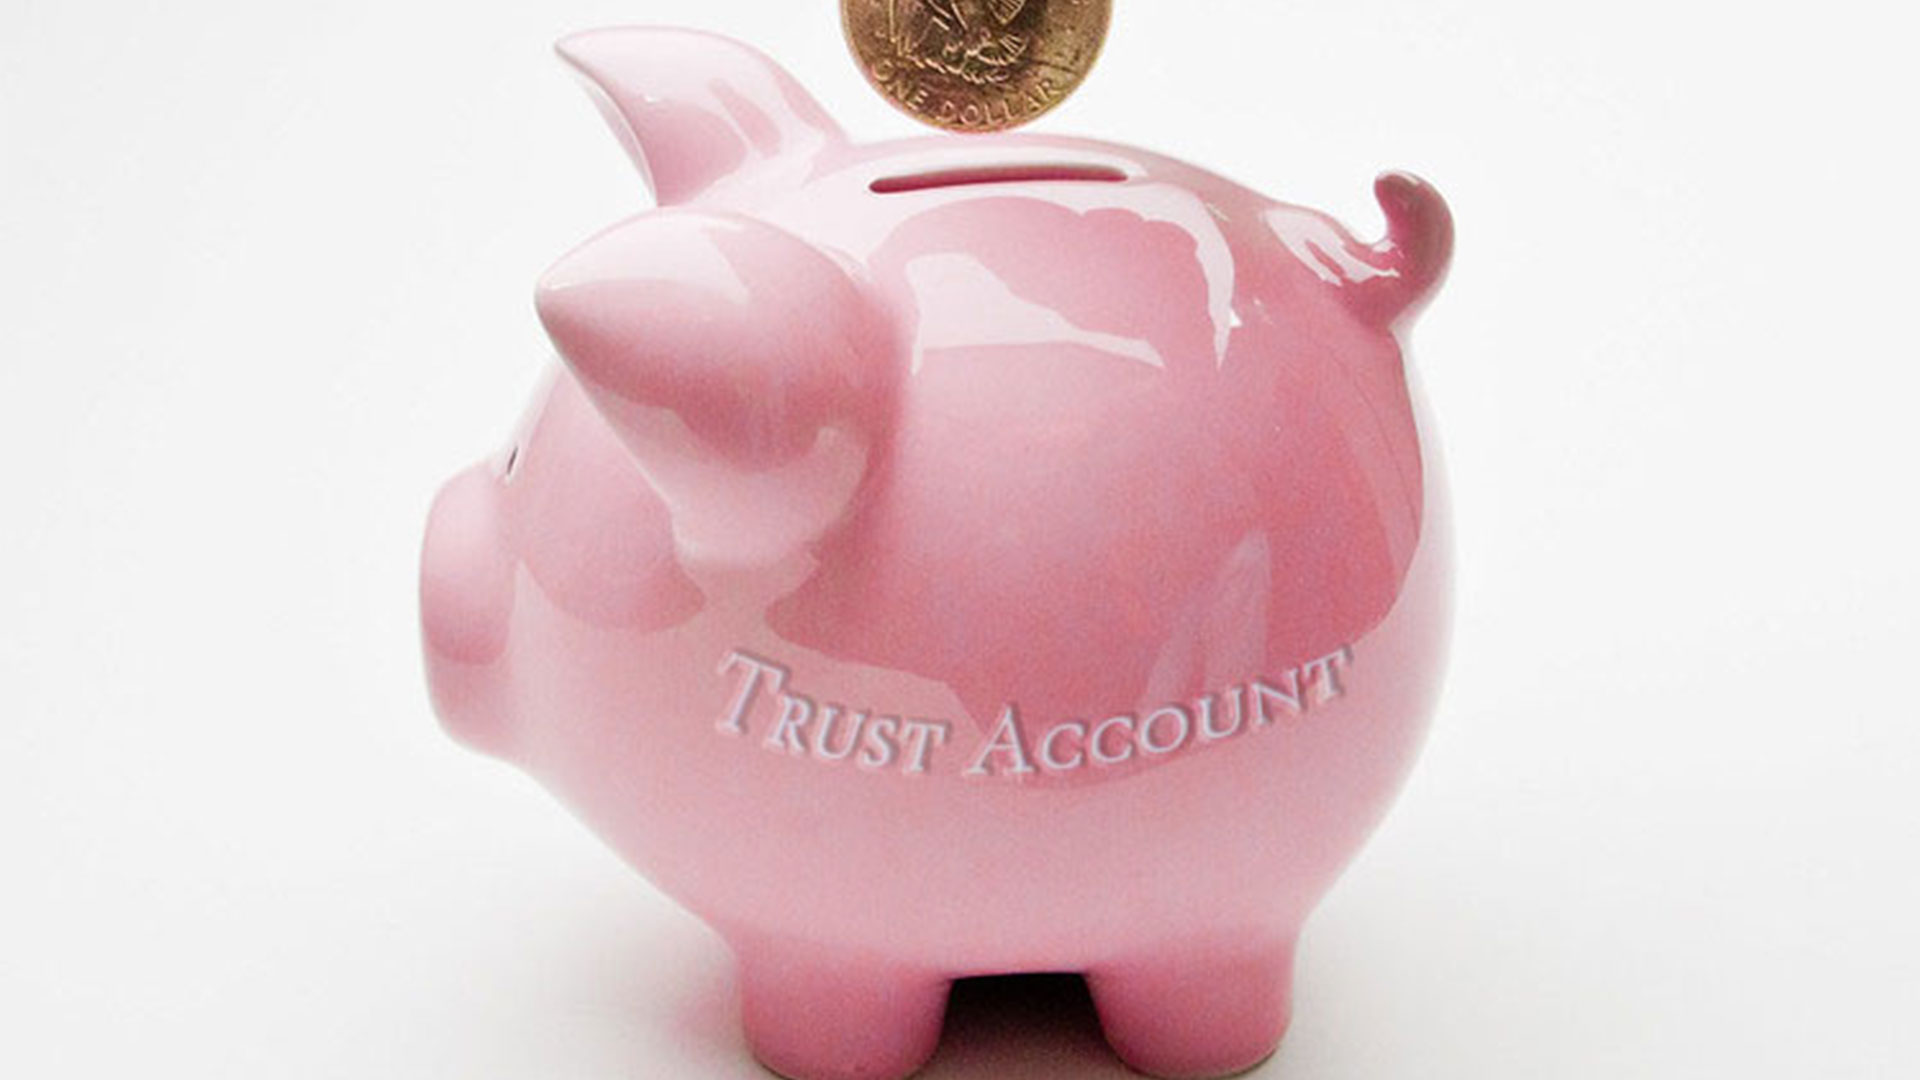 What Is the Balance in Your Trust Account?